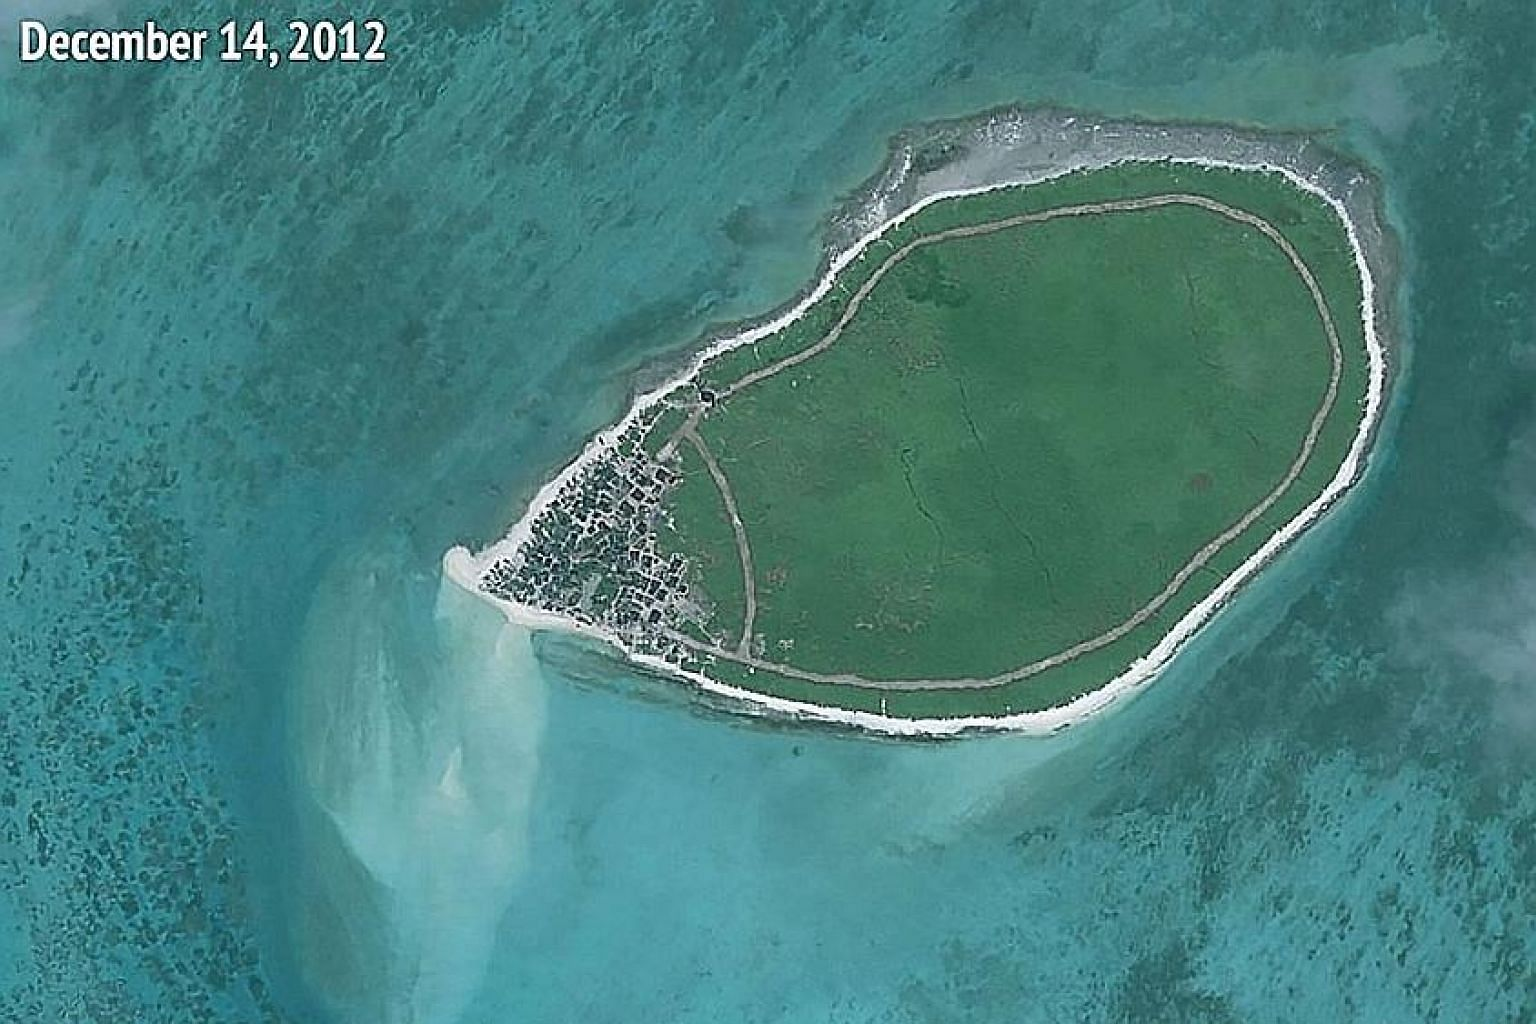 Satellite pictures released by a think-tank showing the new structures that were added to Tree Island between 2012 and this year.